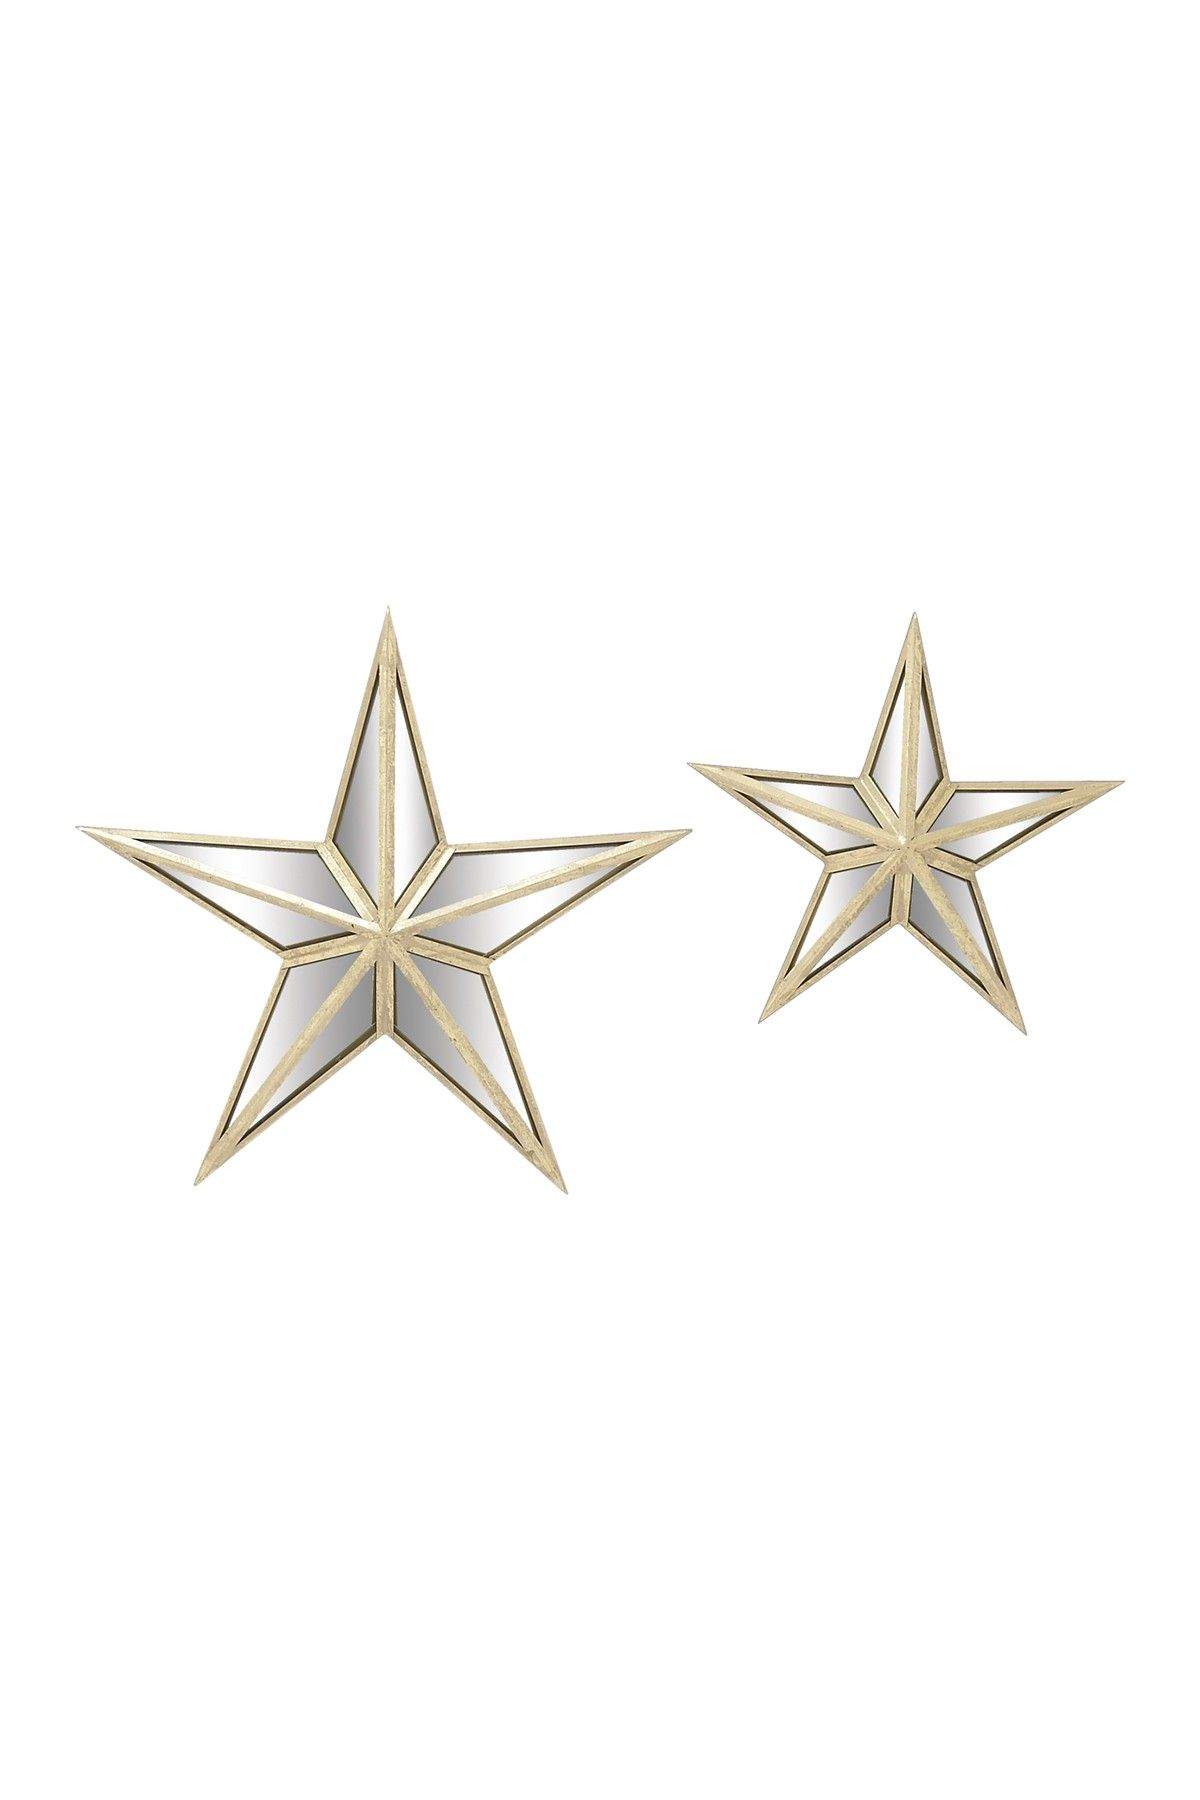 Star Wall Art Mirrored Star Wall Decor 2Piece Setuma On Hautelook  Home